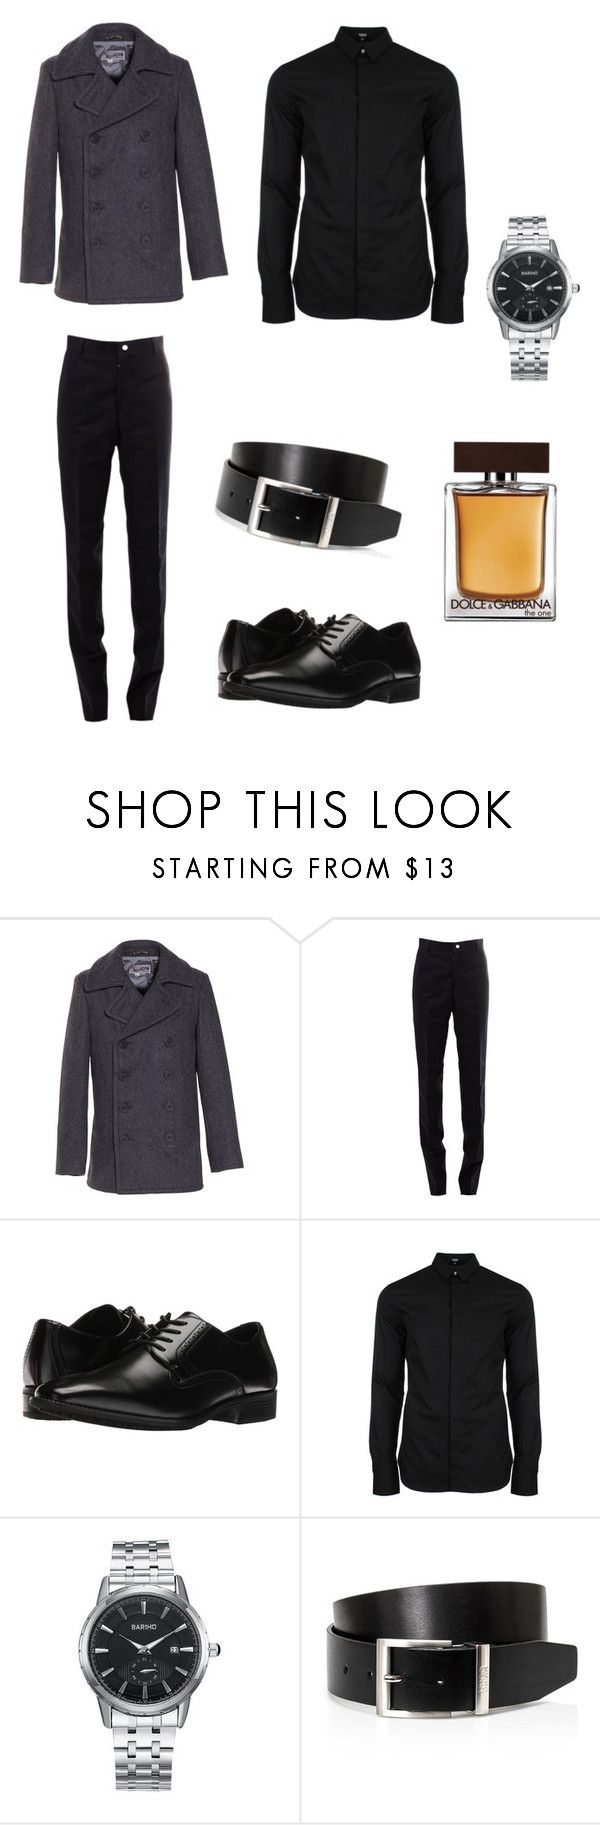 going out by adam-reed on Polyvore featuring Versus, Thom Browne, Schott NYC, Stacy Adams, HUGO, Dolce&Gabbana, men's fashion and menswear